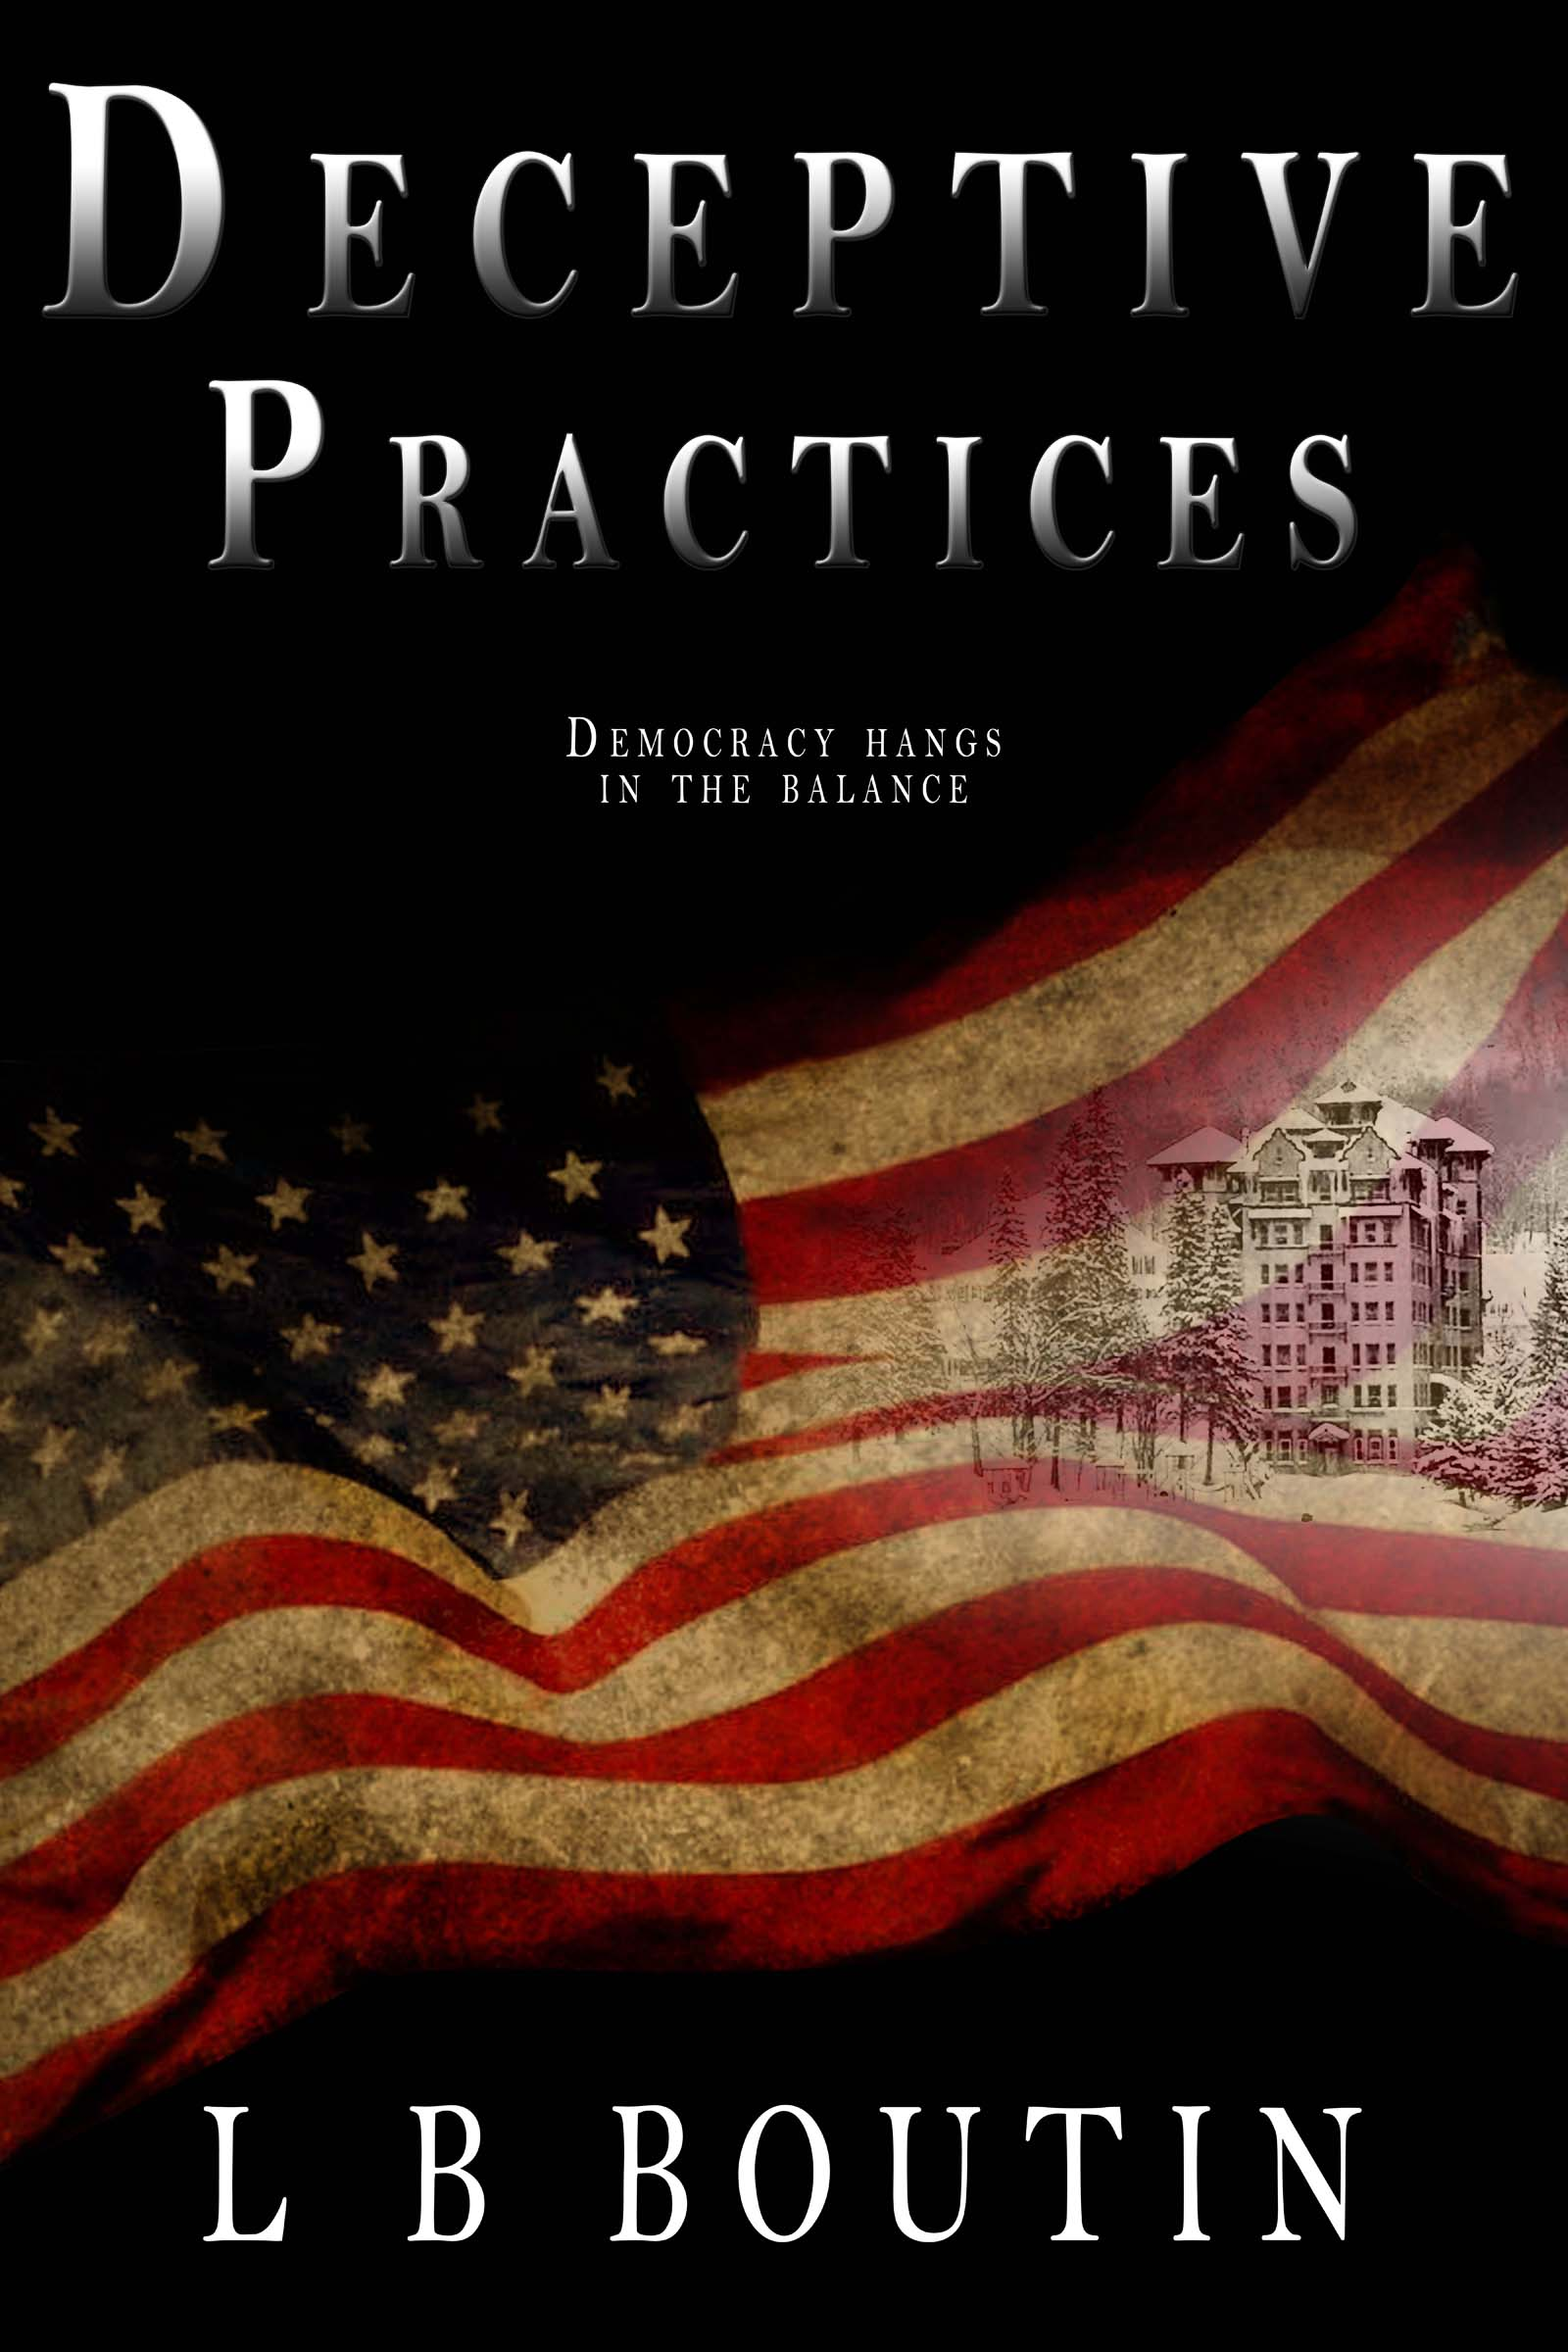 deceptive_practices_book_cover_fb.jpg